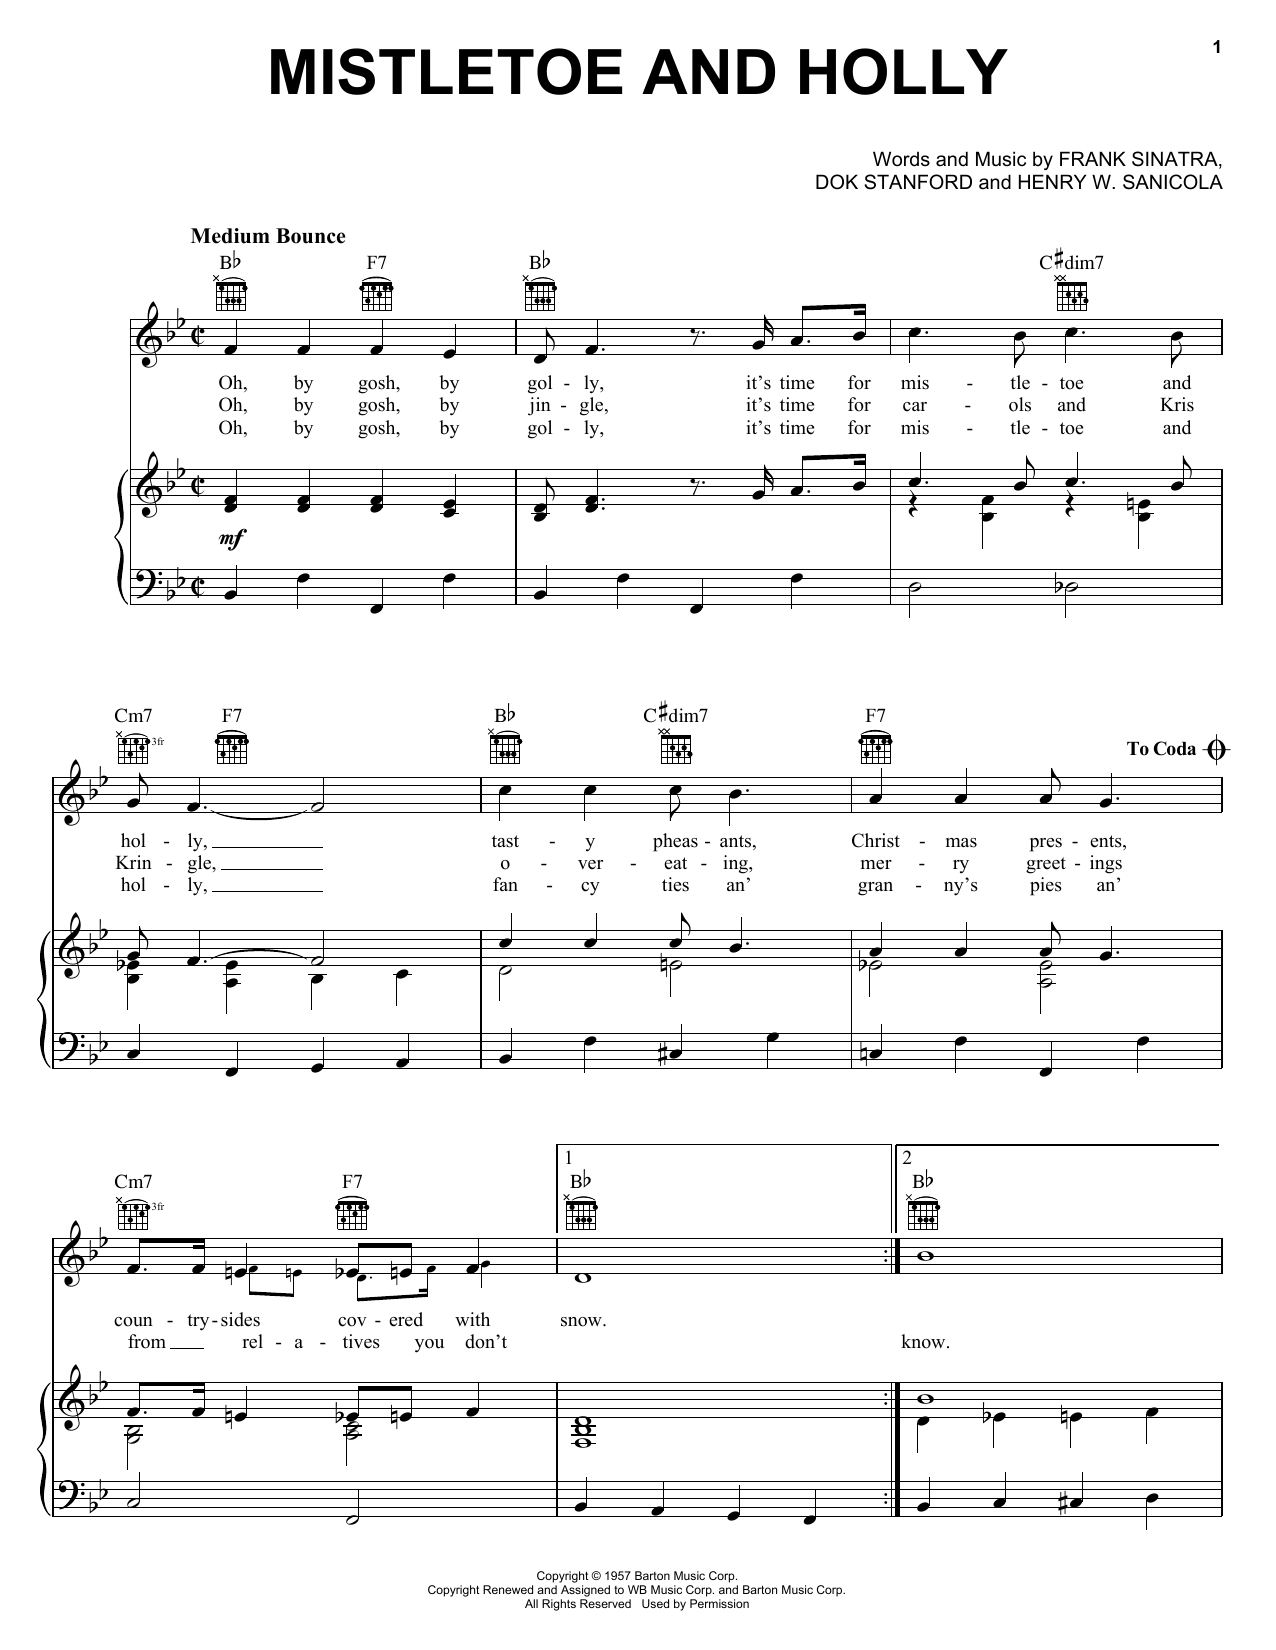 Frank Sinatra Mistletoe And Holly sheet music notes and chords